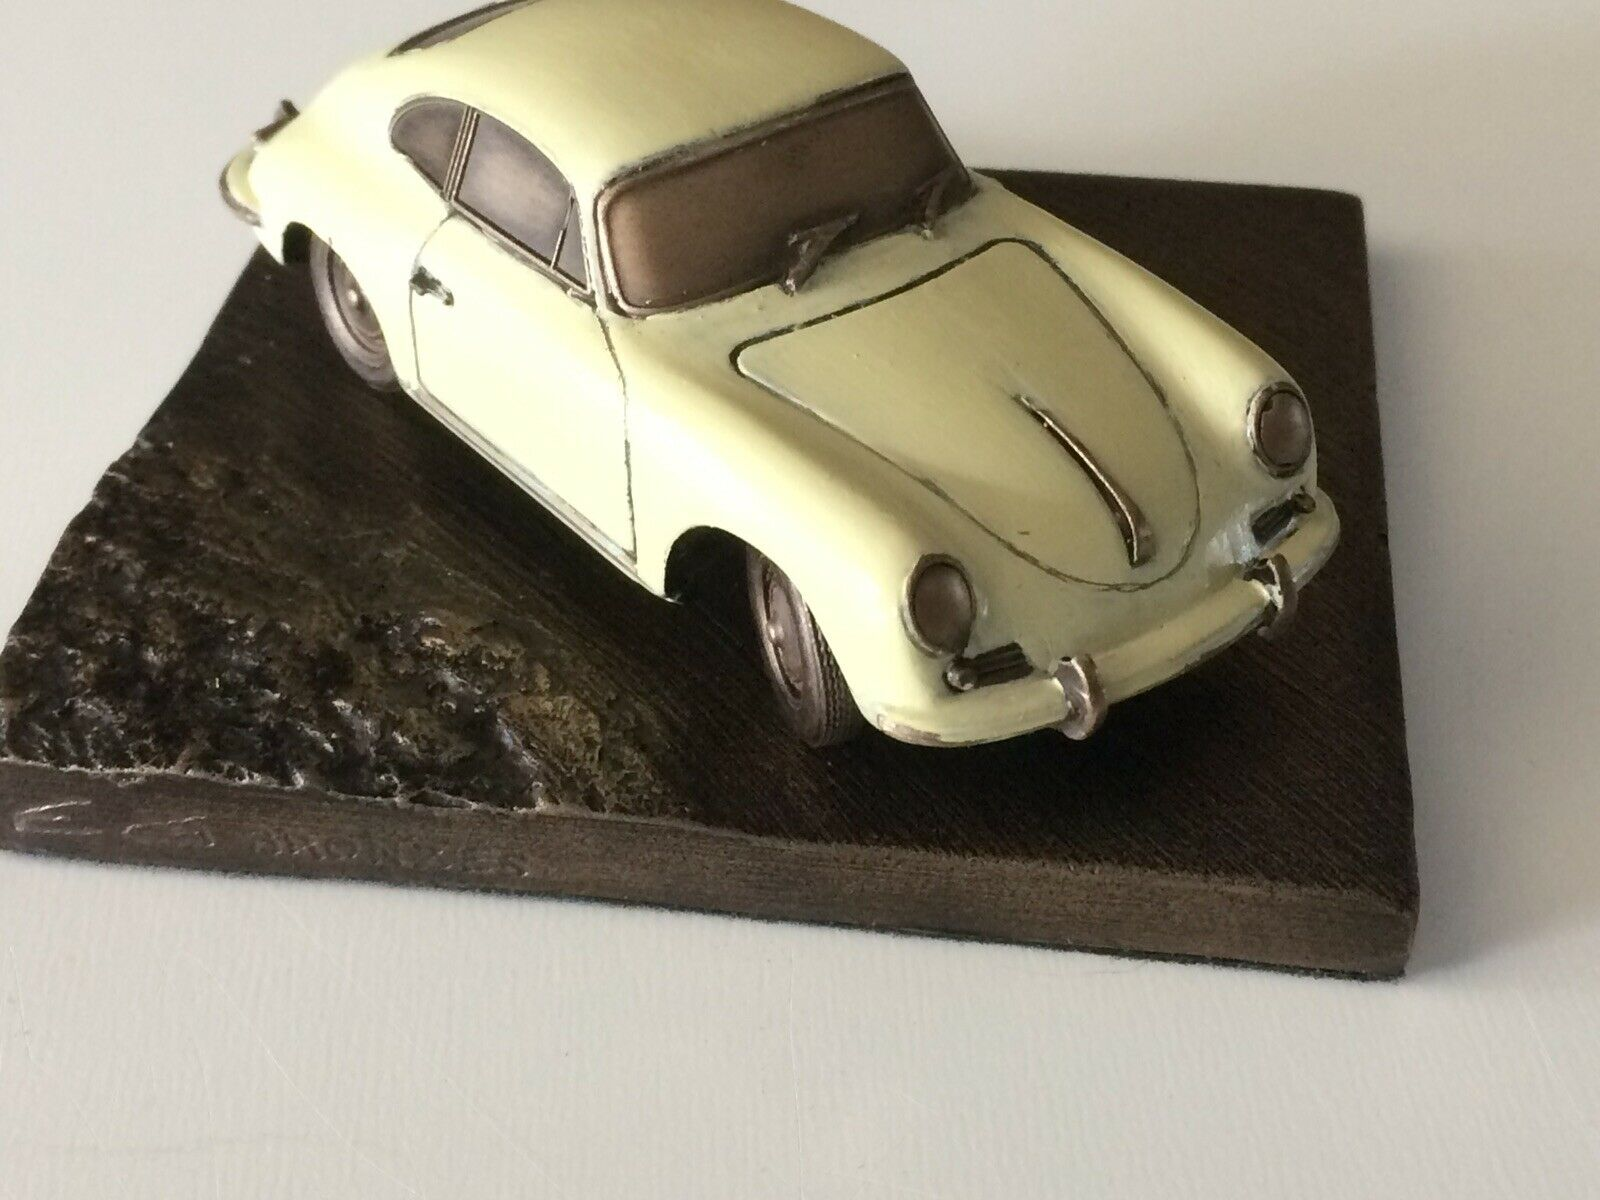 Reproduction en bronze Porsche 356 B Patine Ivoire 1 43 sur socle 10x10